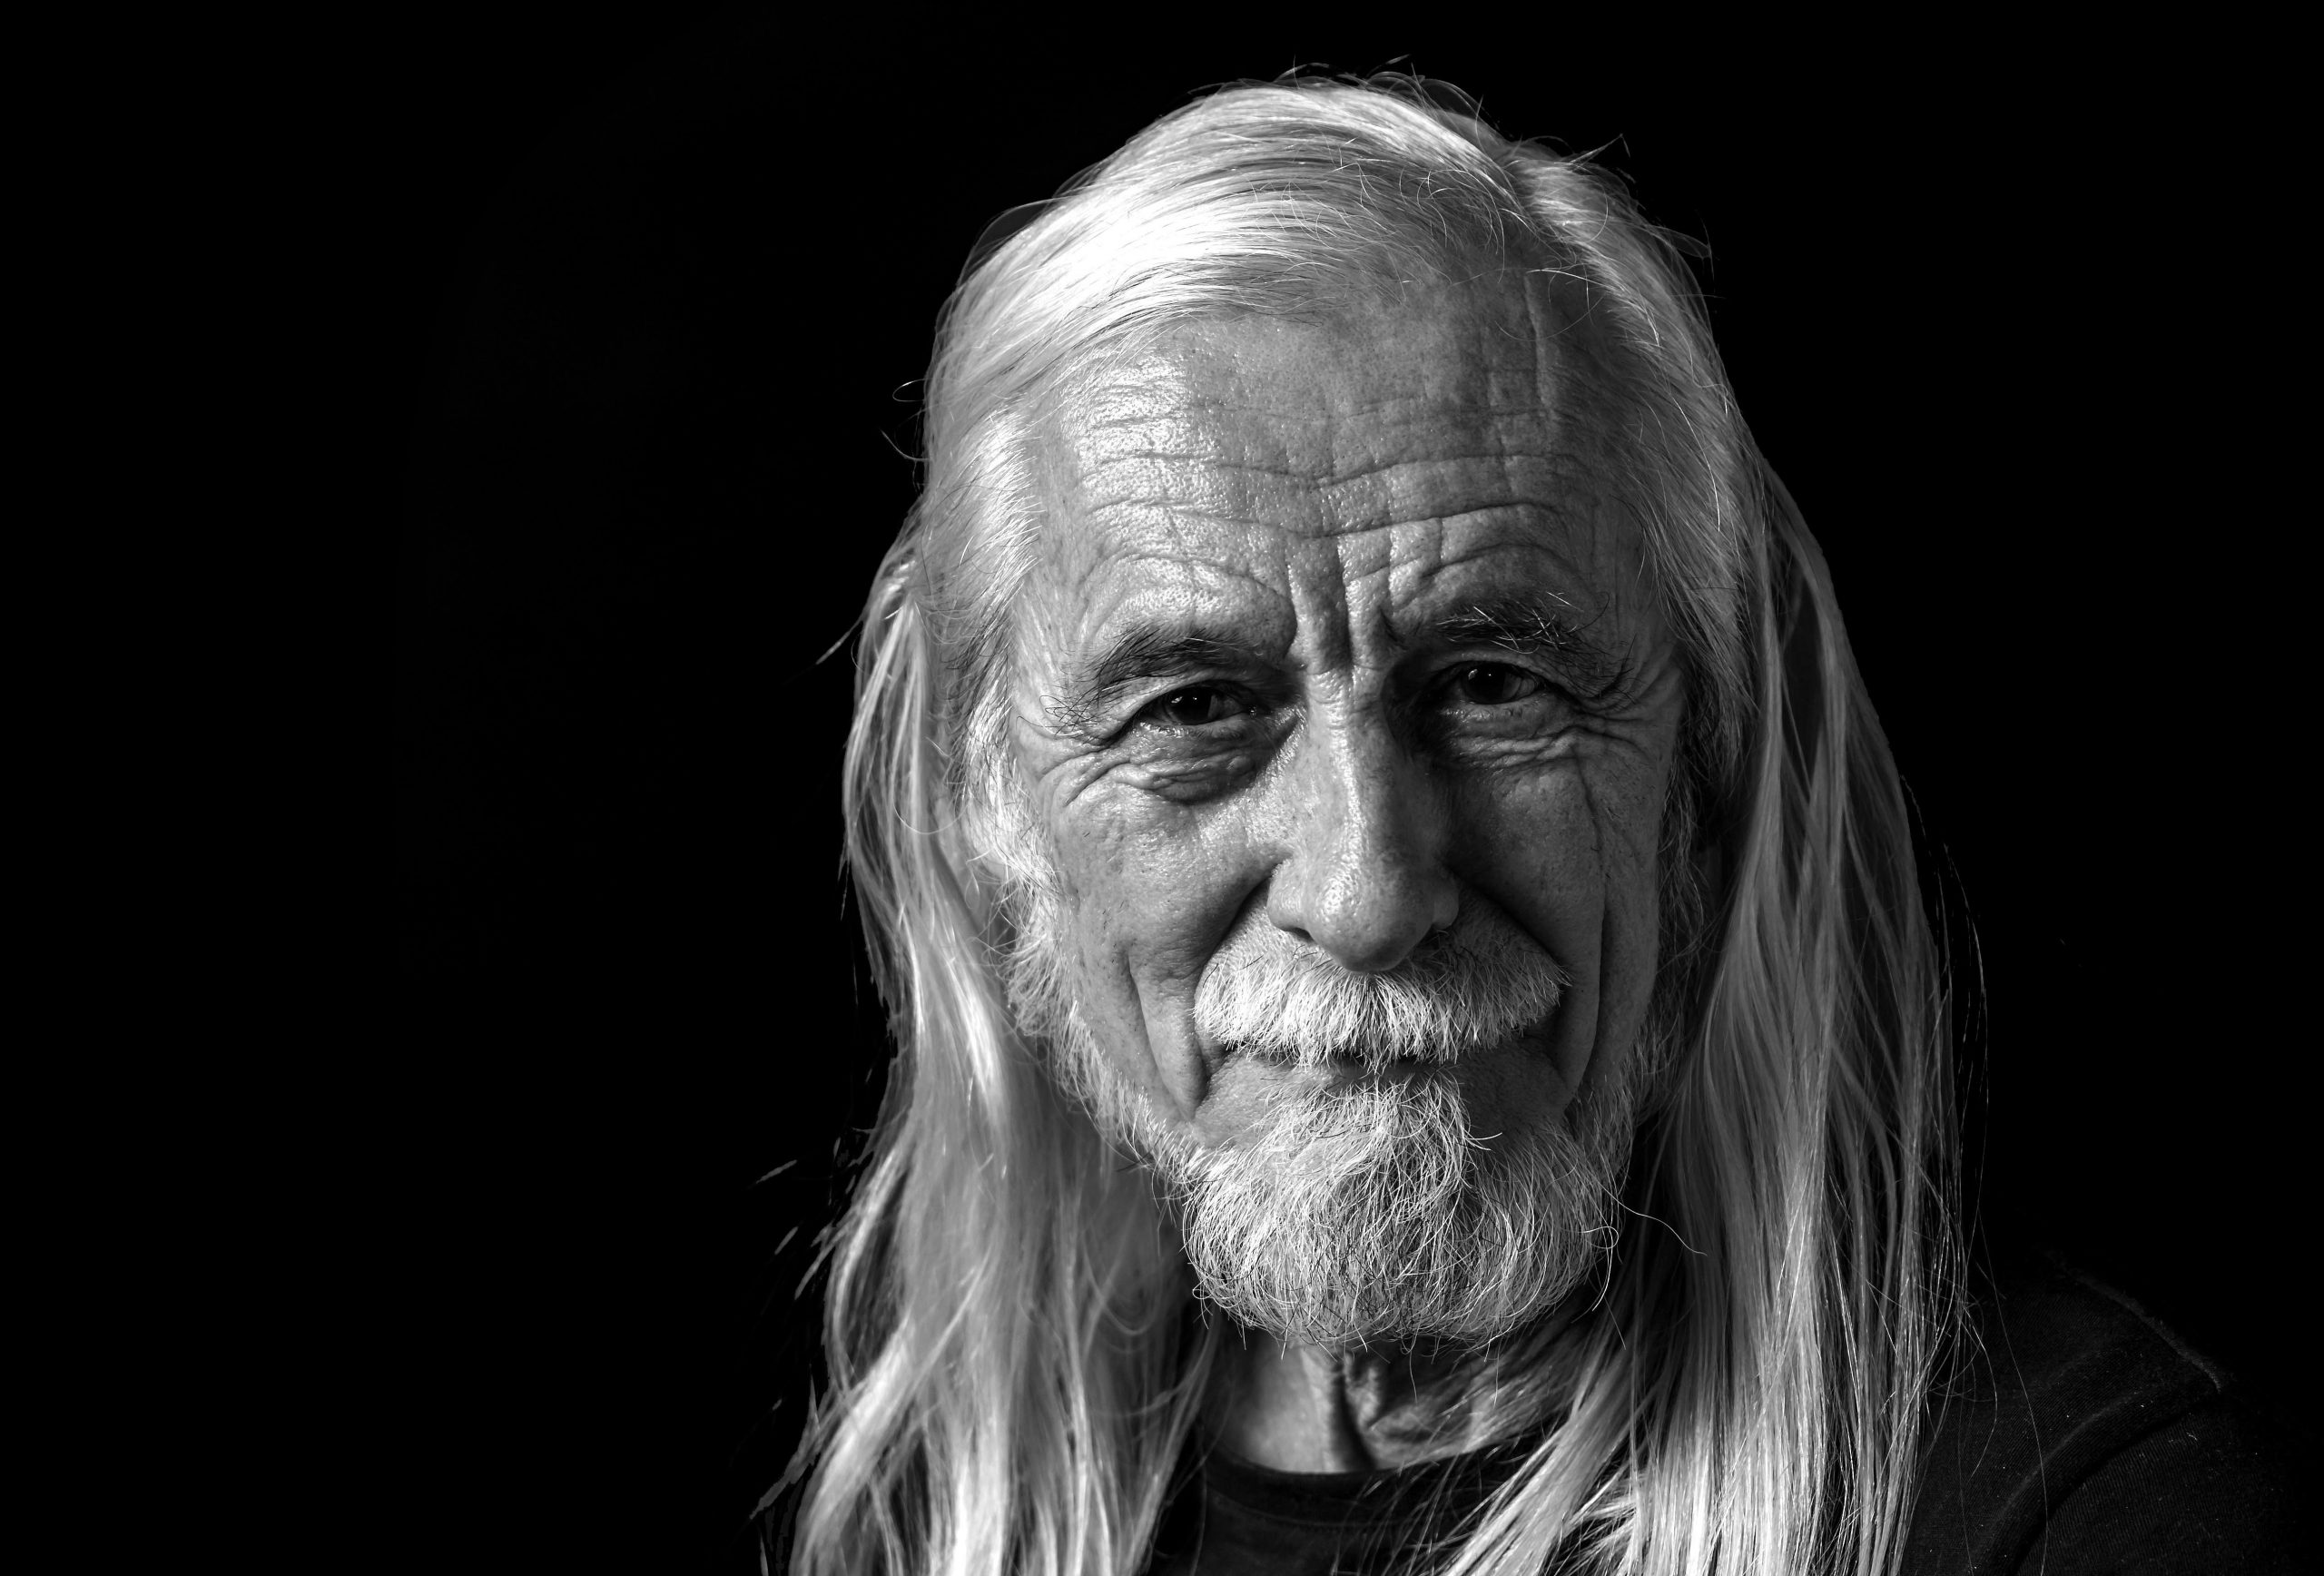 Low key portrait of attractive long gray hair old man looking at camera with tranquility.